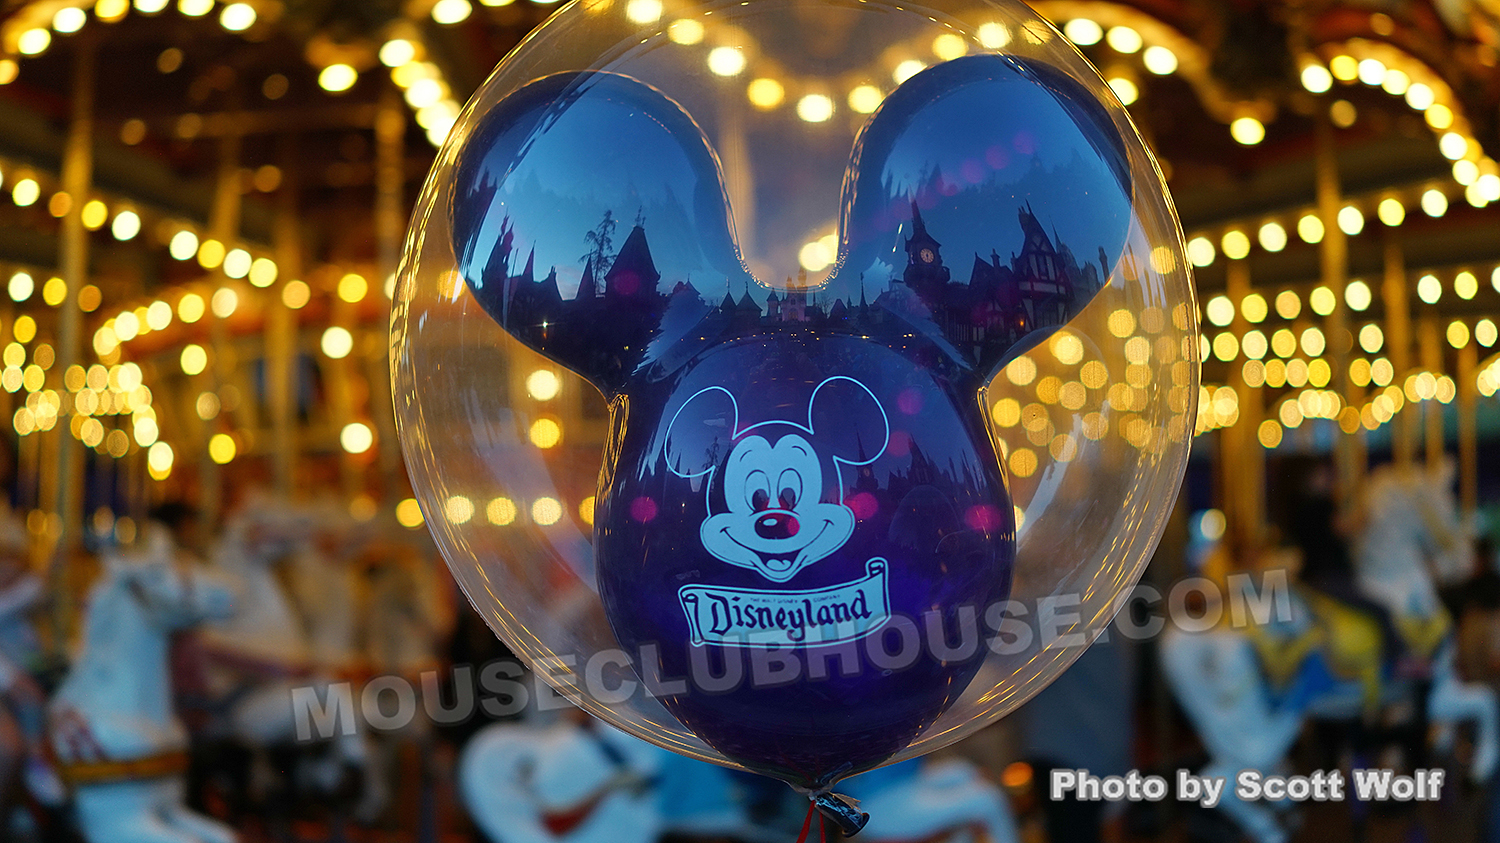 Disneyland balloon at Sleeping Beauty Castle - photo by Scott Wolf